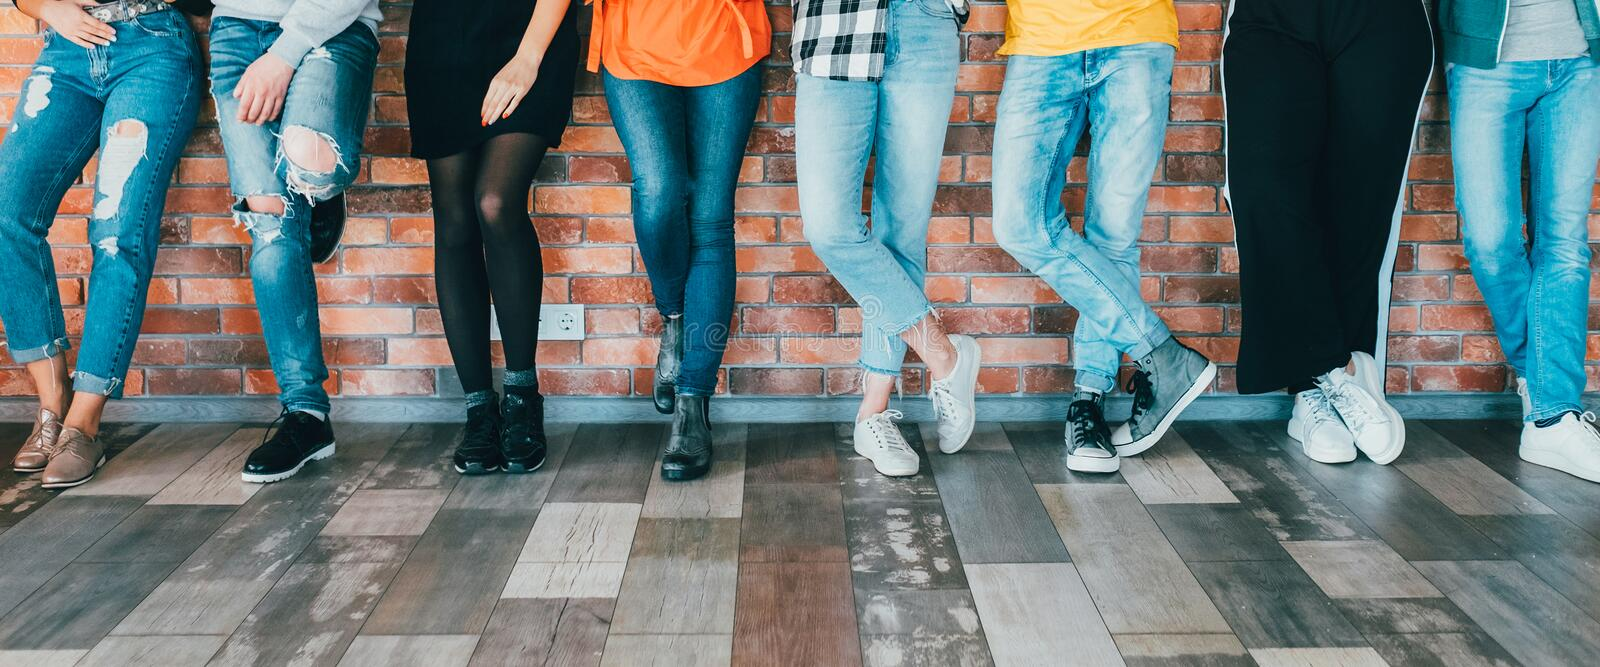 People diversity men women leg relaxed millennials. People diversity. Cropped shot of men women legs in jeans. Group standing leaning against brick wall. Relaxed royalty free stock photos